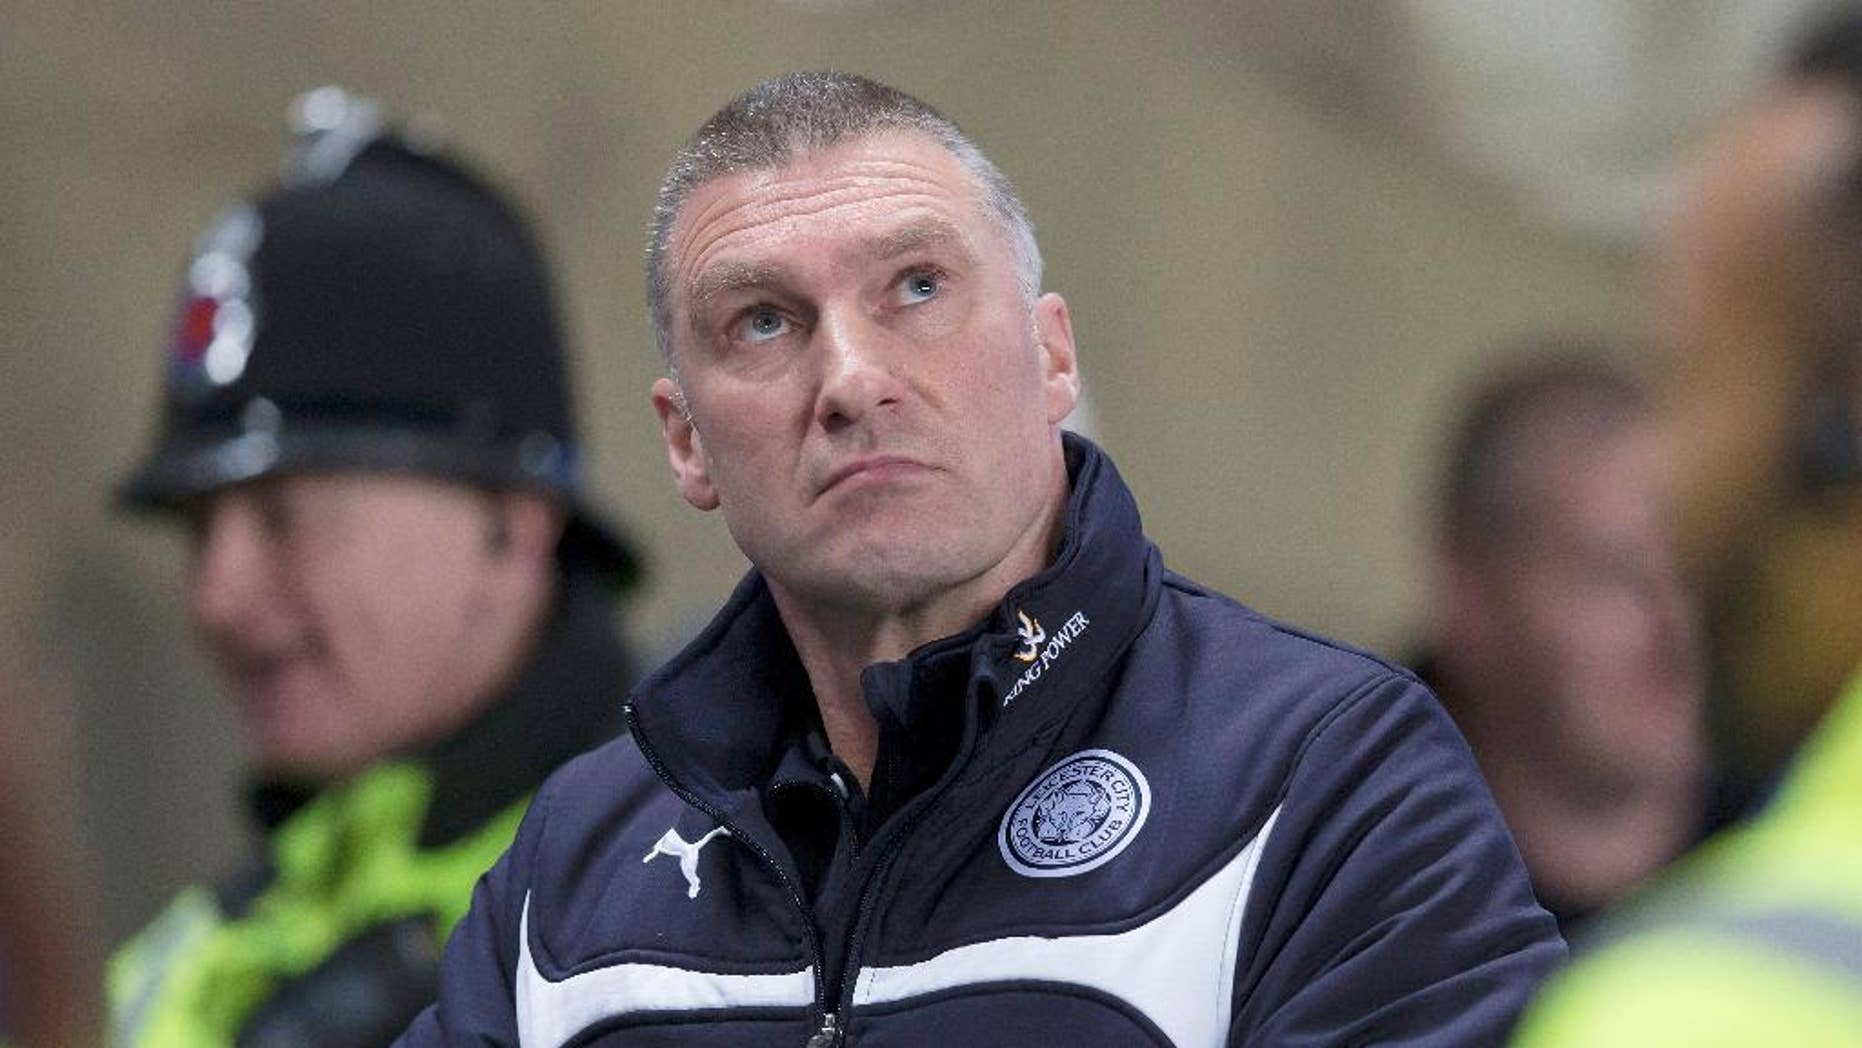 """In this March 4, 2015, file photo, Leicester City manager Nigel Pearson stands at his team's English Premier League soccer match with Manchester City at the Etihad Stadium in Manchester, England. Pearson is also the father of player James Pearson who was with two other players engaging in an apparent orgy with Thai sex workers in a hotel room. It remains unclear how the """"racist orgy"""" video was leaked. But it's safe to say the scandal surrounding Leicester City was not the game plan when its Thai owners and sponsors invited the club to tour Thailand. (AP Photo/Jon Super, File)"""